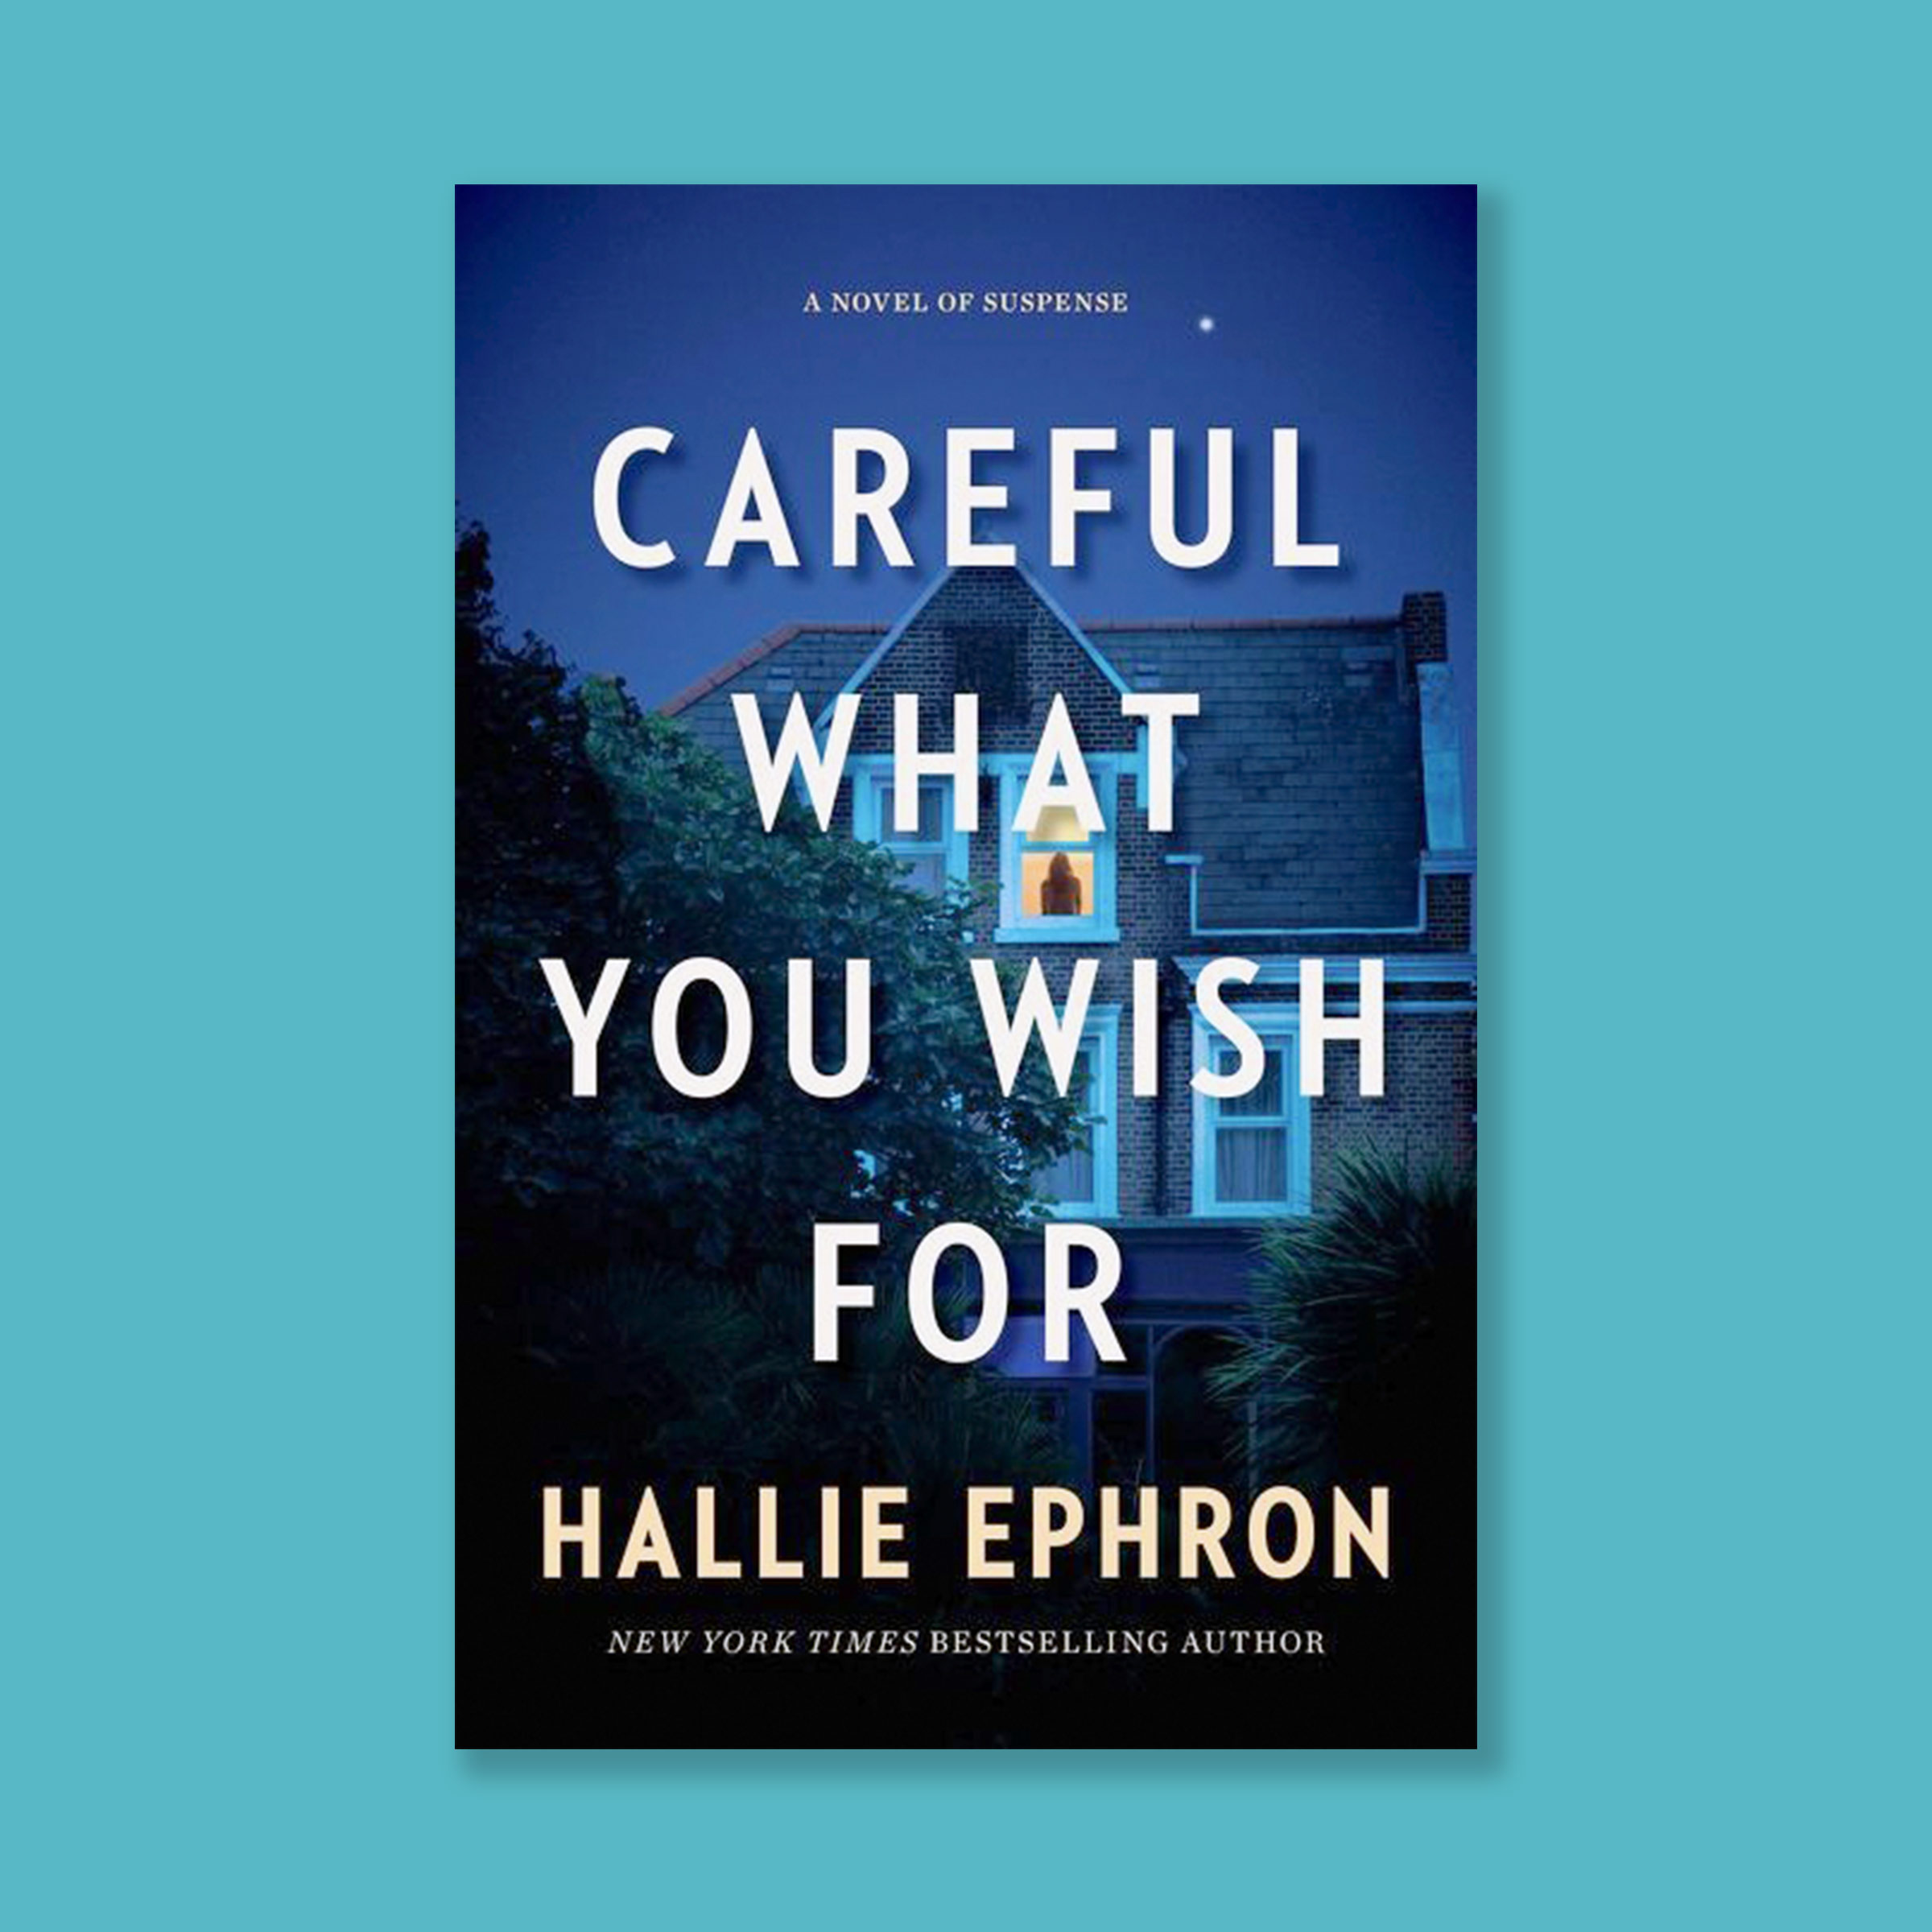 Careful What You Wish For is Ephron's seventh work of stand-alone suspense fiction.